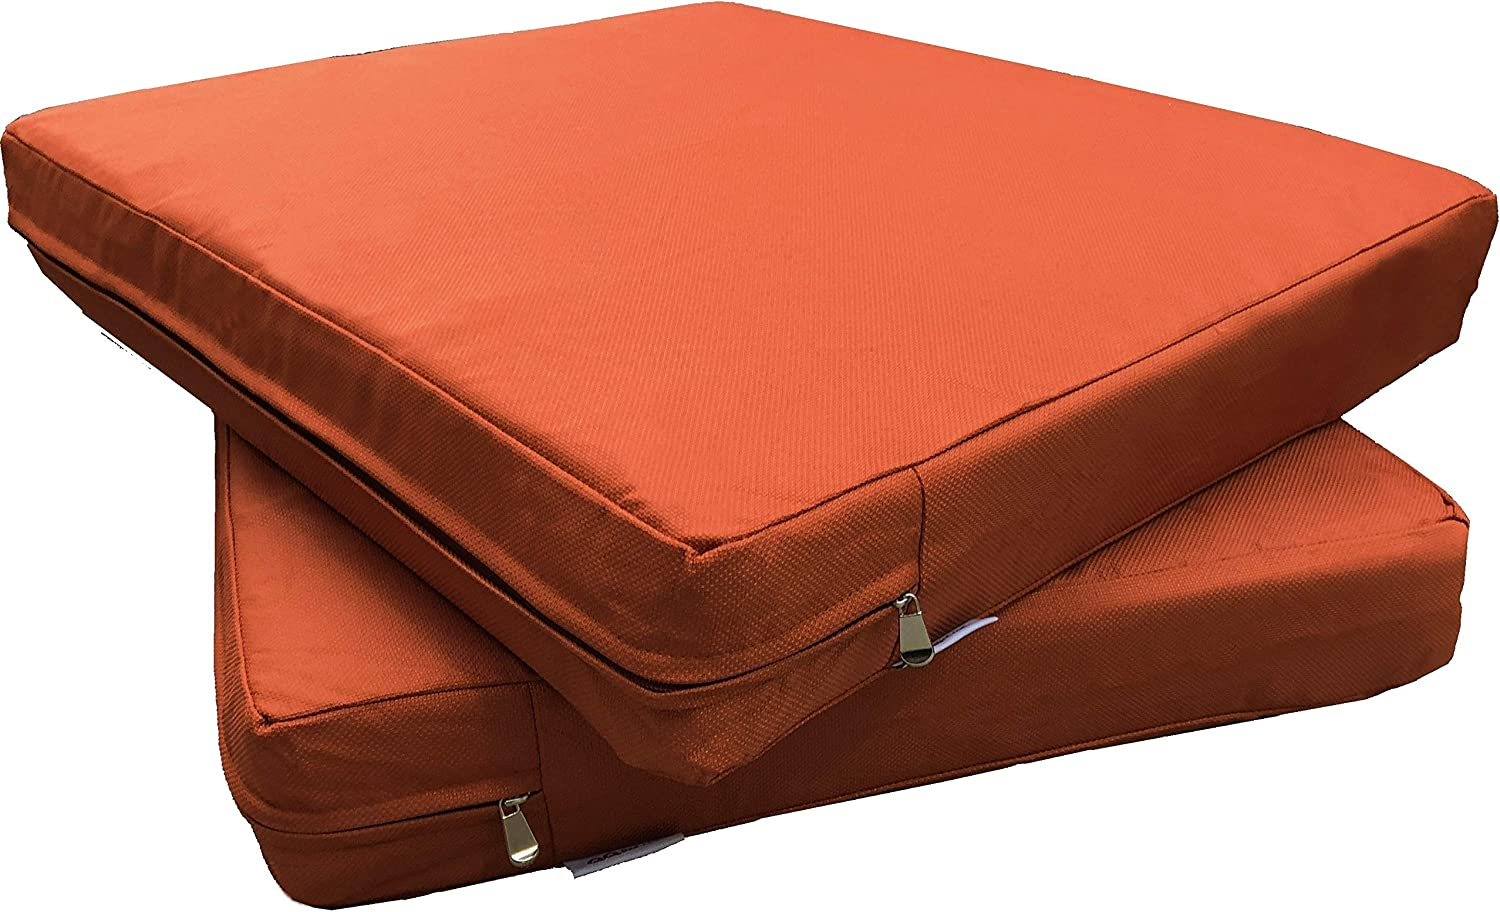 "QQbed 2 Pack Outdoor Patio Deep Seat Memory Foam (Seat and Back) Cushion Set with Waterproof Internal Cover - Size 20""X18""X4"", Rustic Rust"